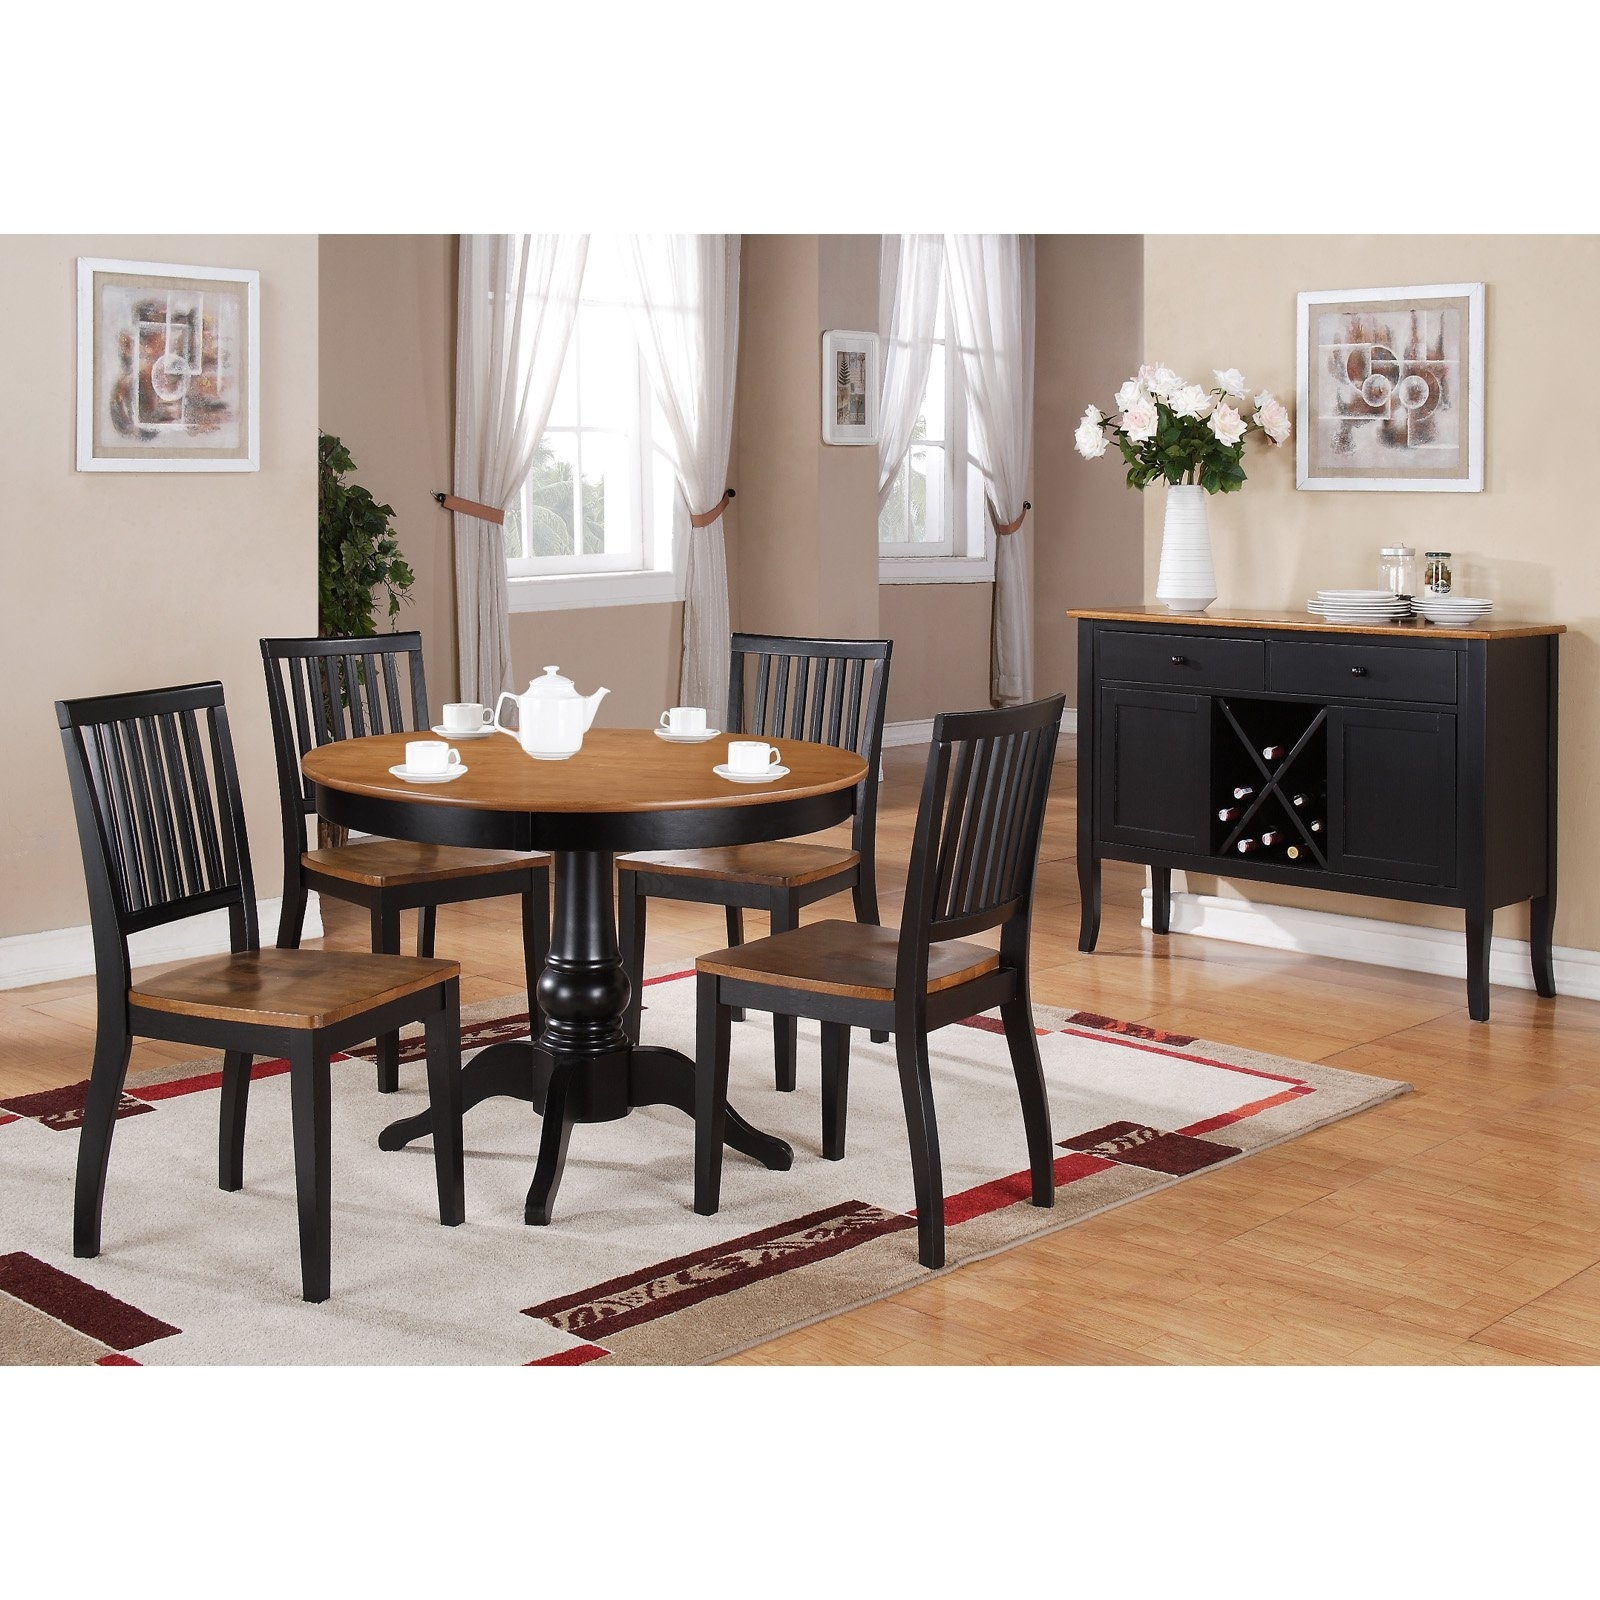 Steve Silver 5 Piece Candice Two Tone Round Pedestal Dining Table Inside Newest Candice Ii 5 Piece Round Dining Sets With Slat Back Side Chairs (View 8 of 20)